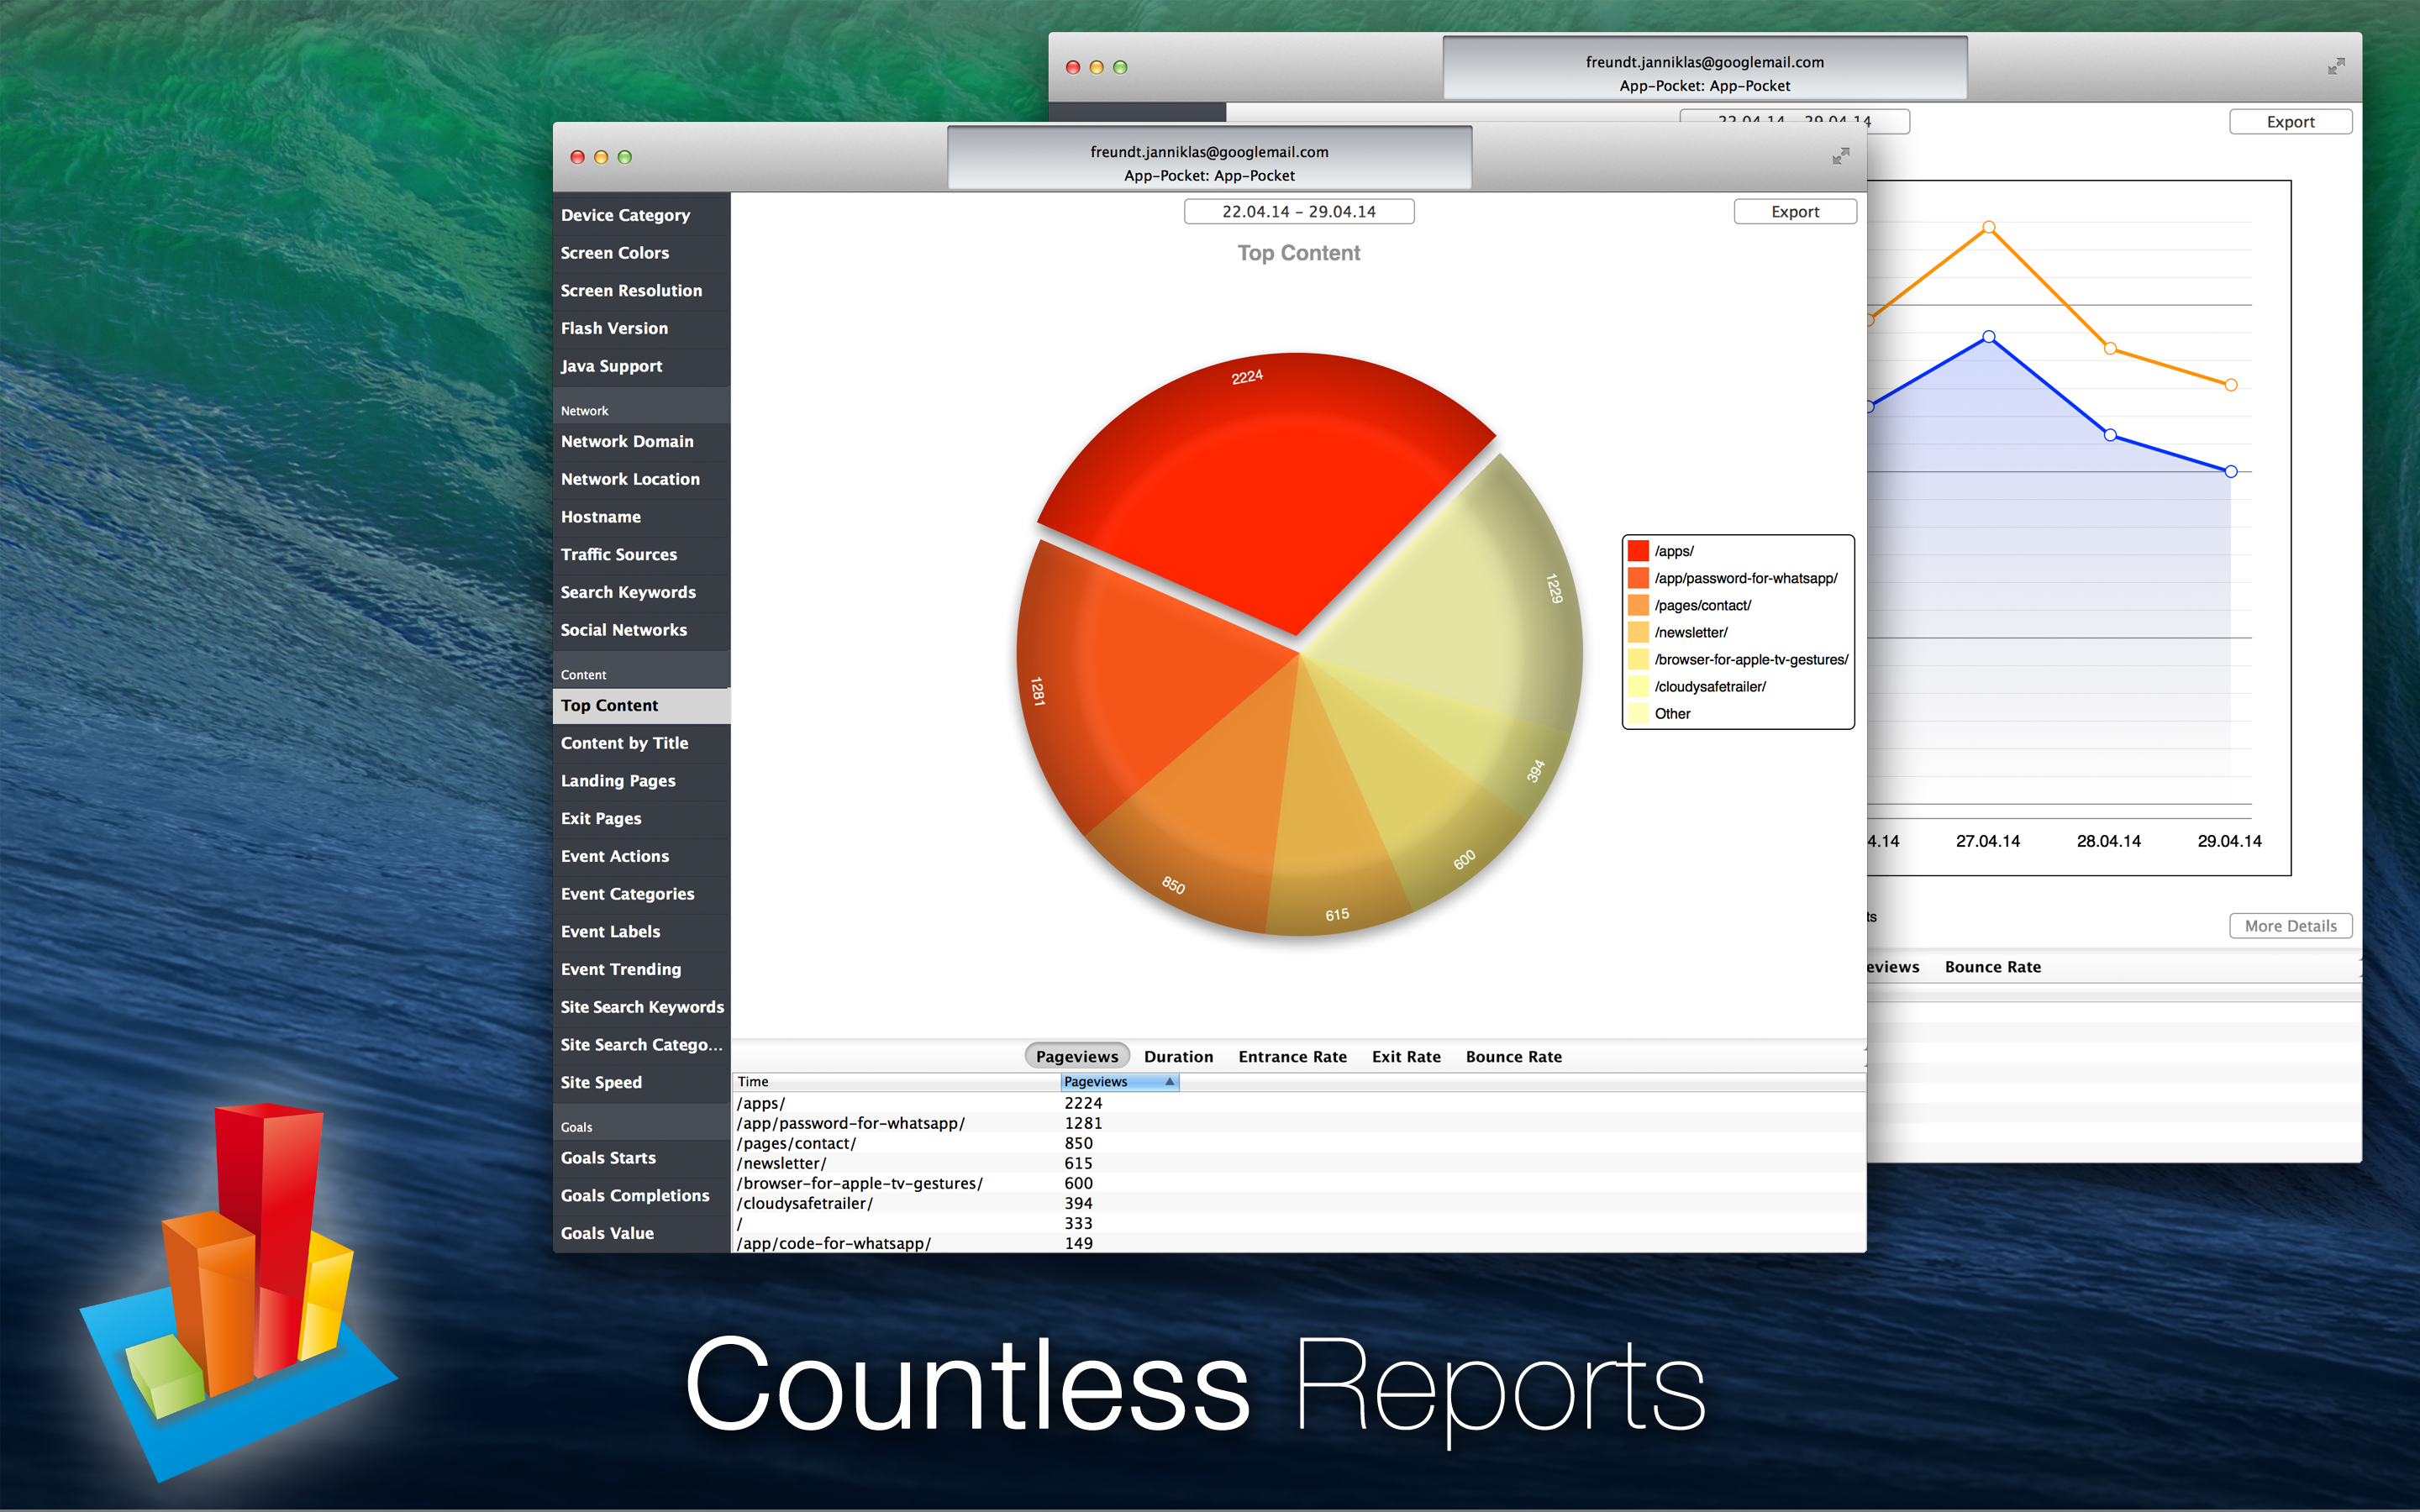 Countless reports are available within Analytics